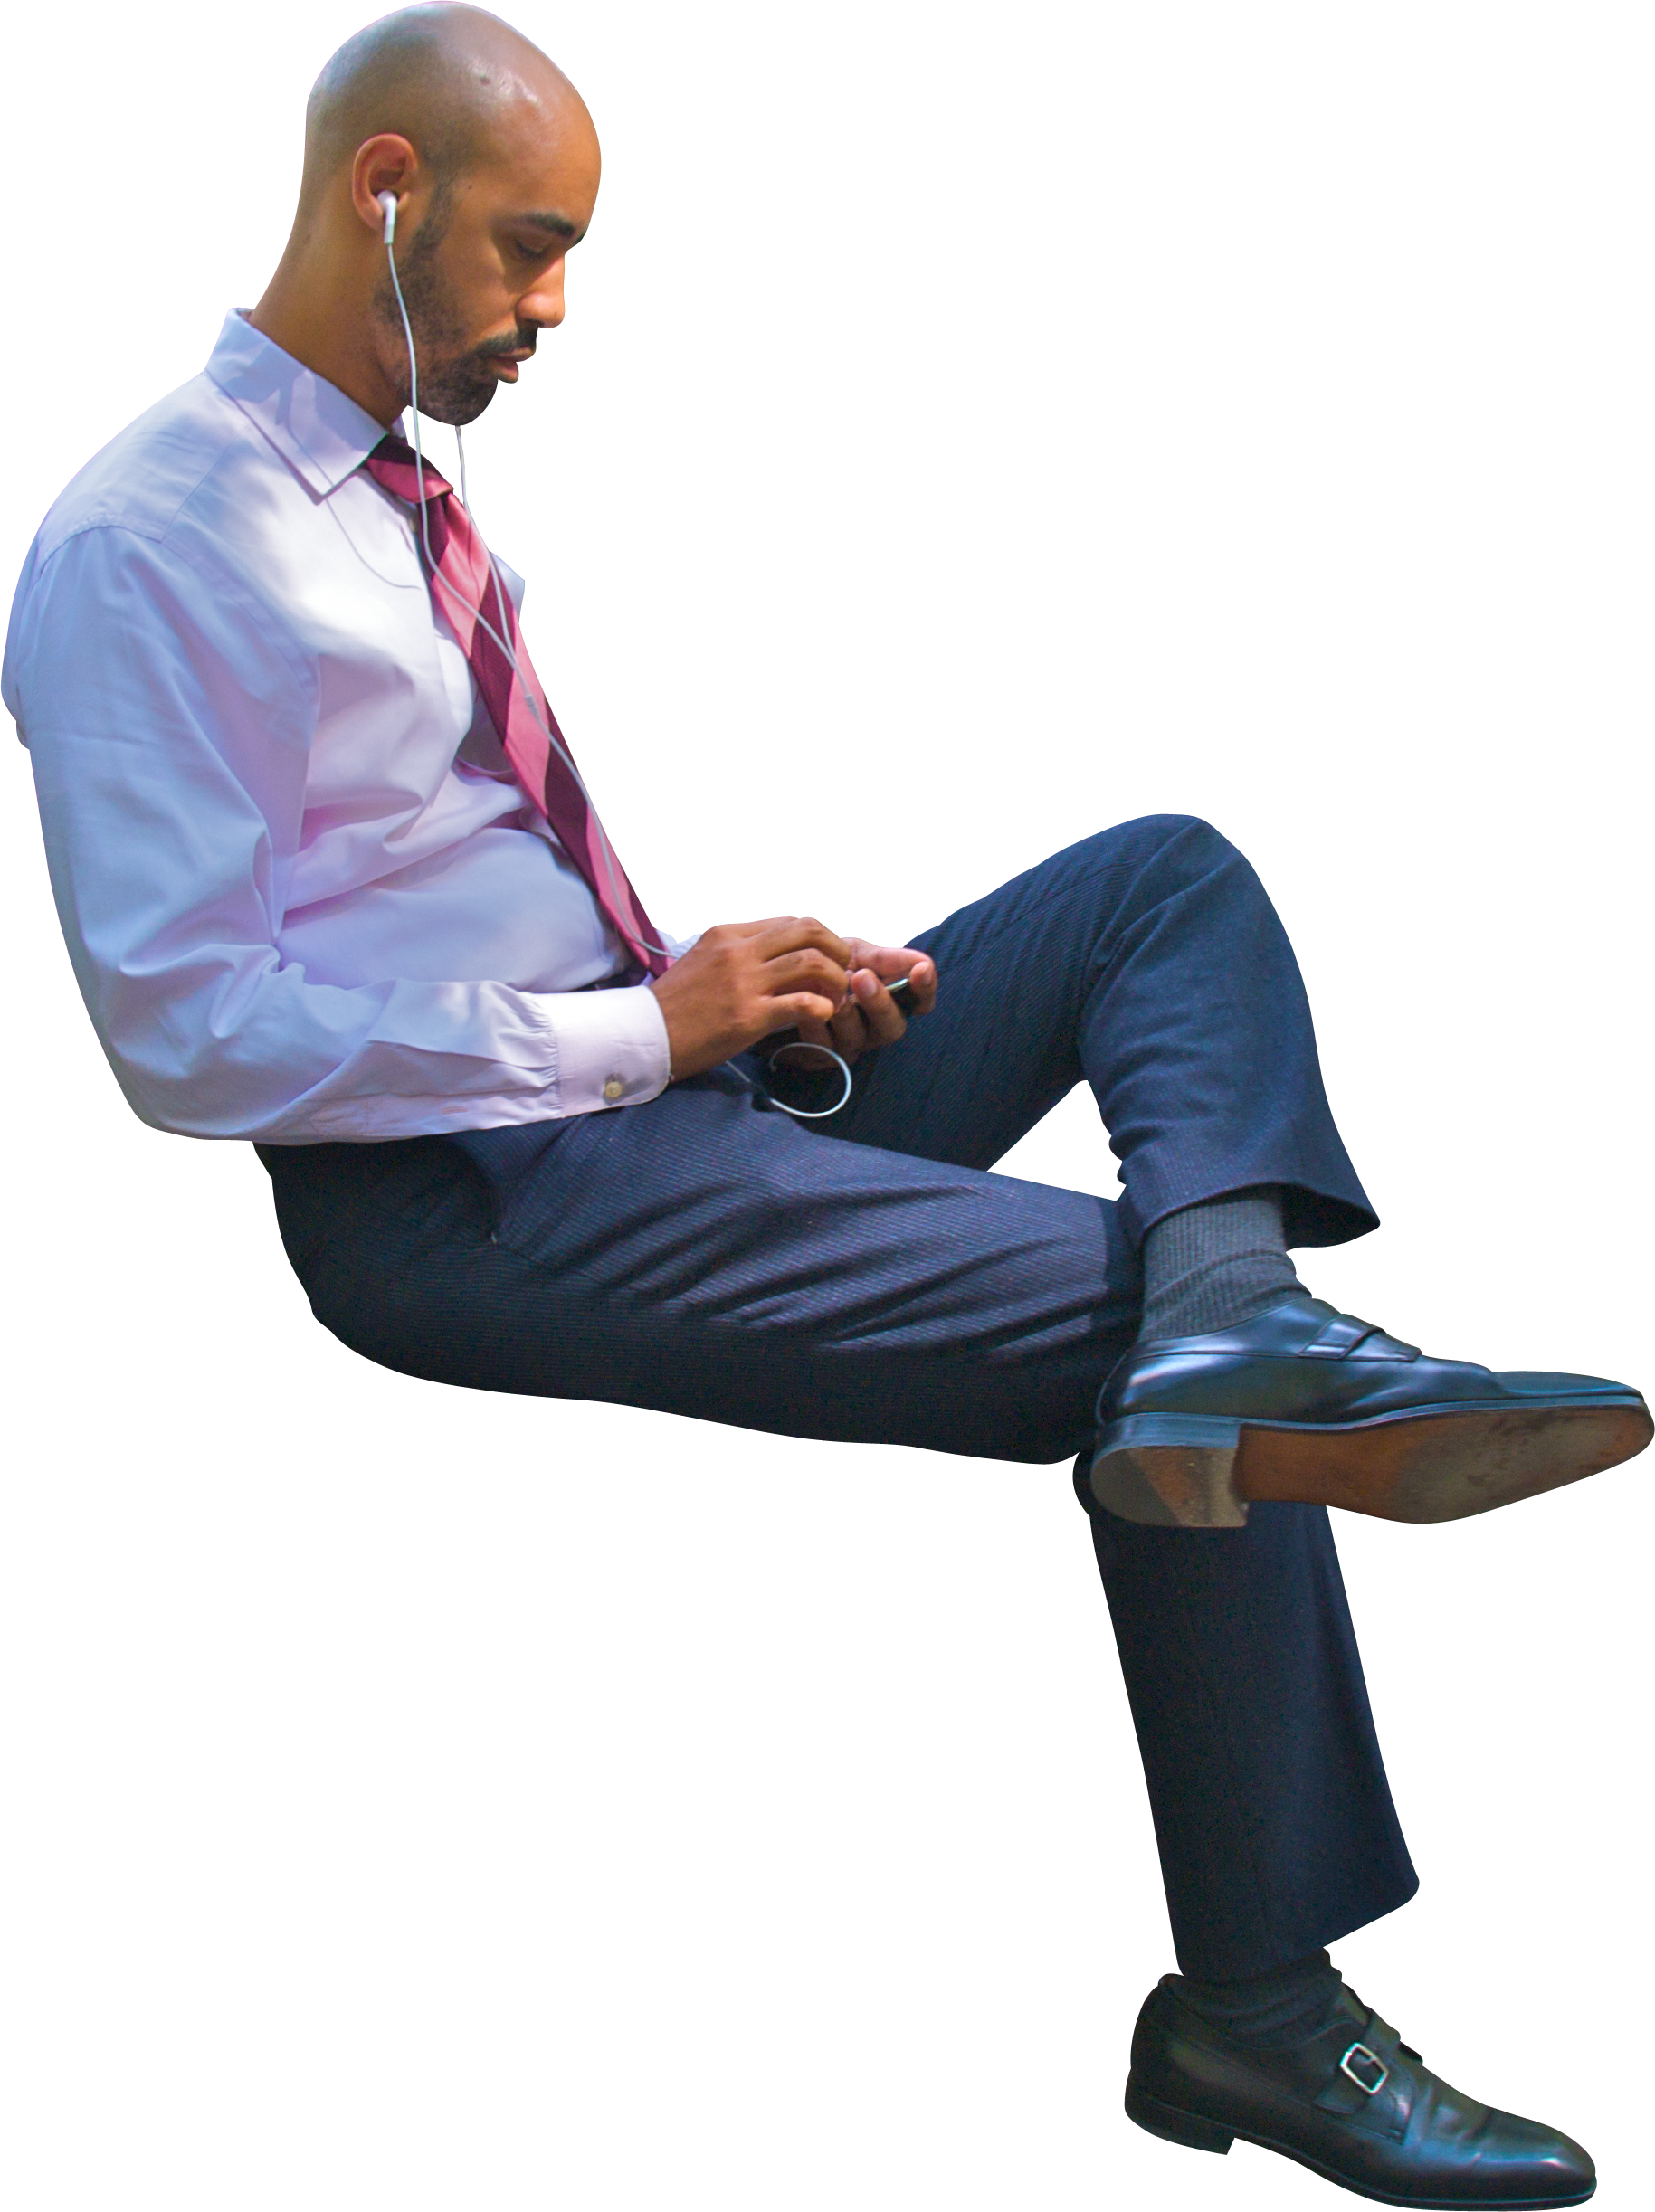 business man using phone Cut Out Pinterest Phone and